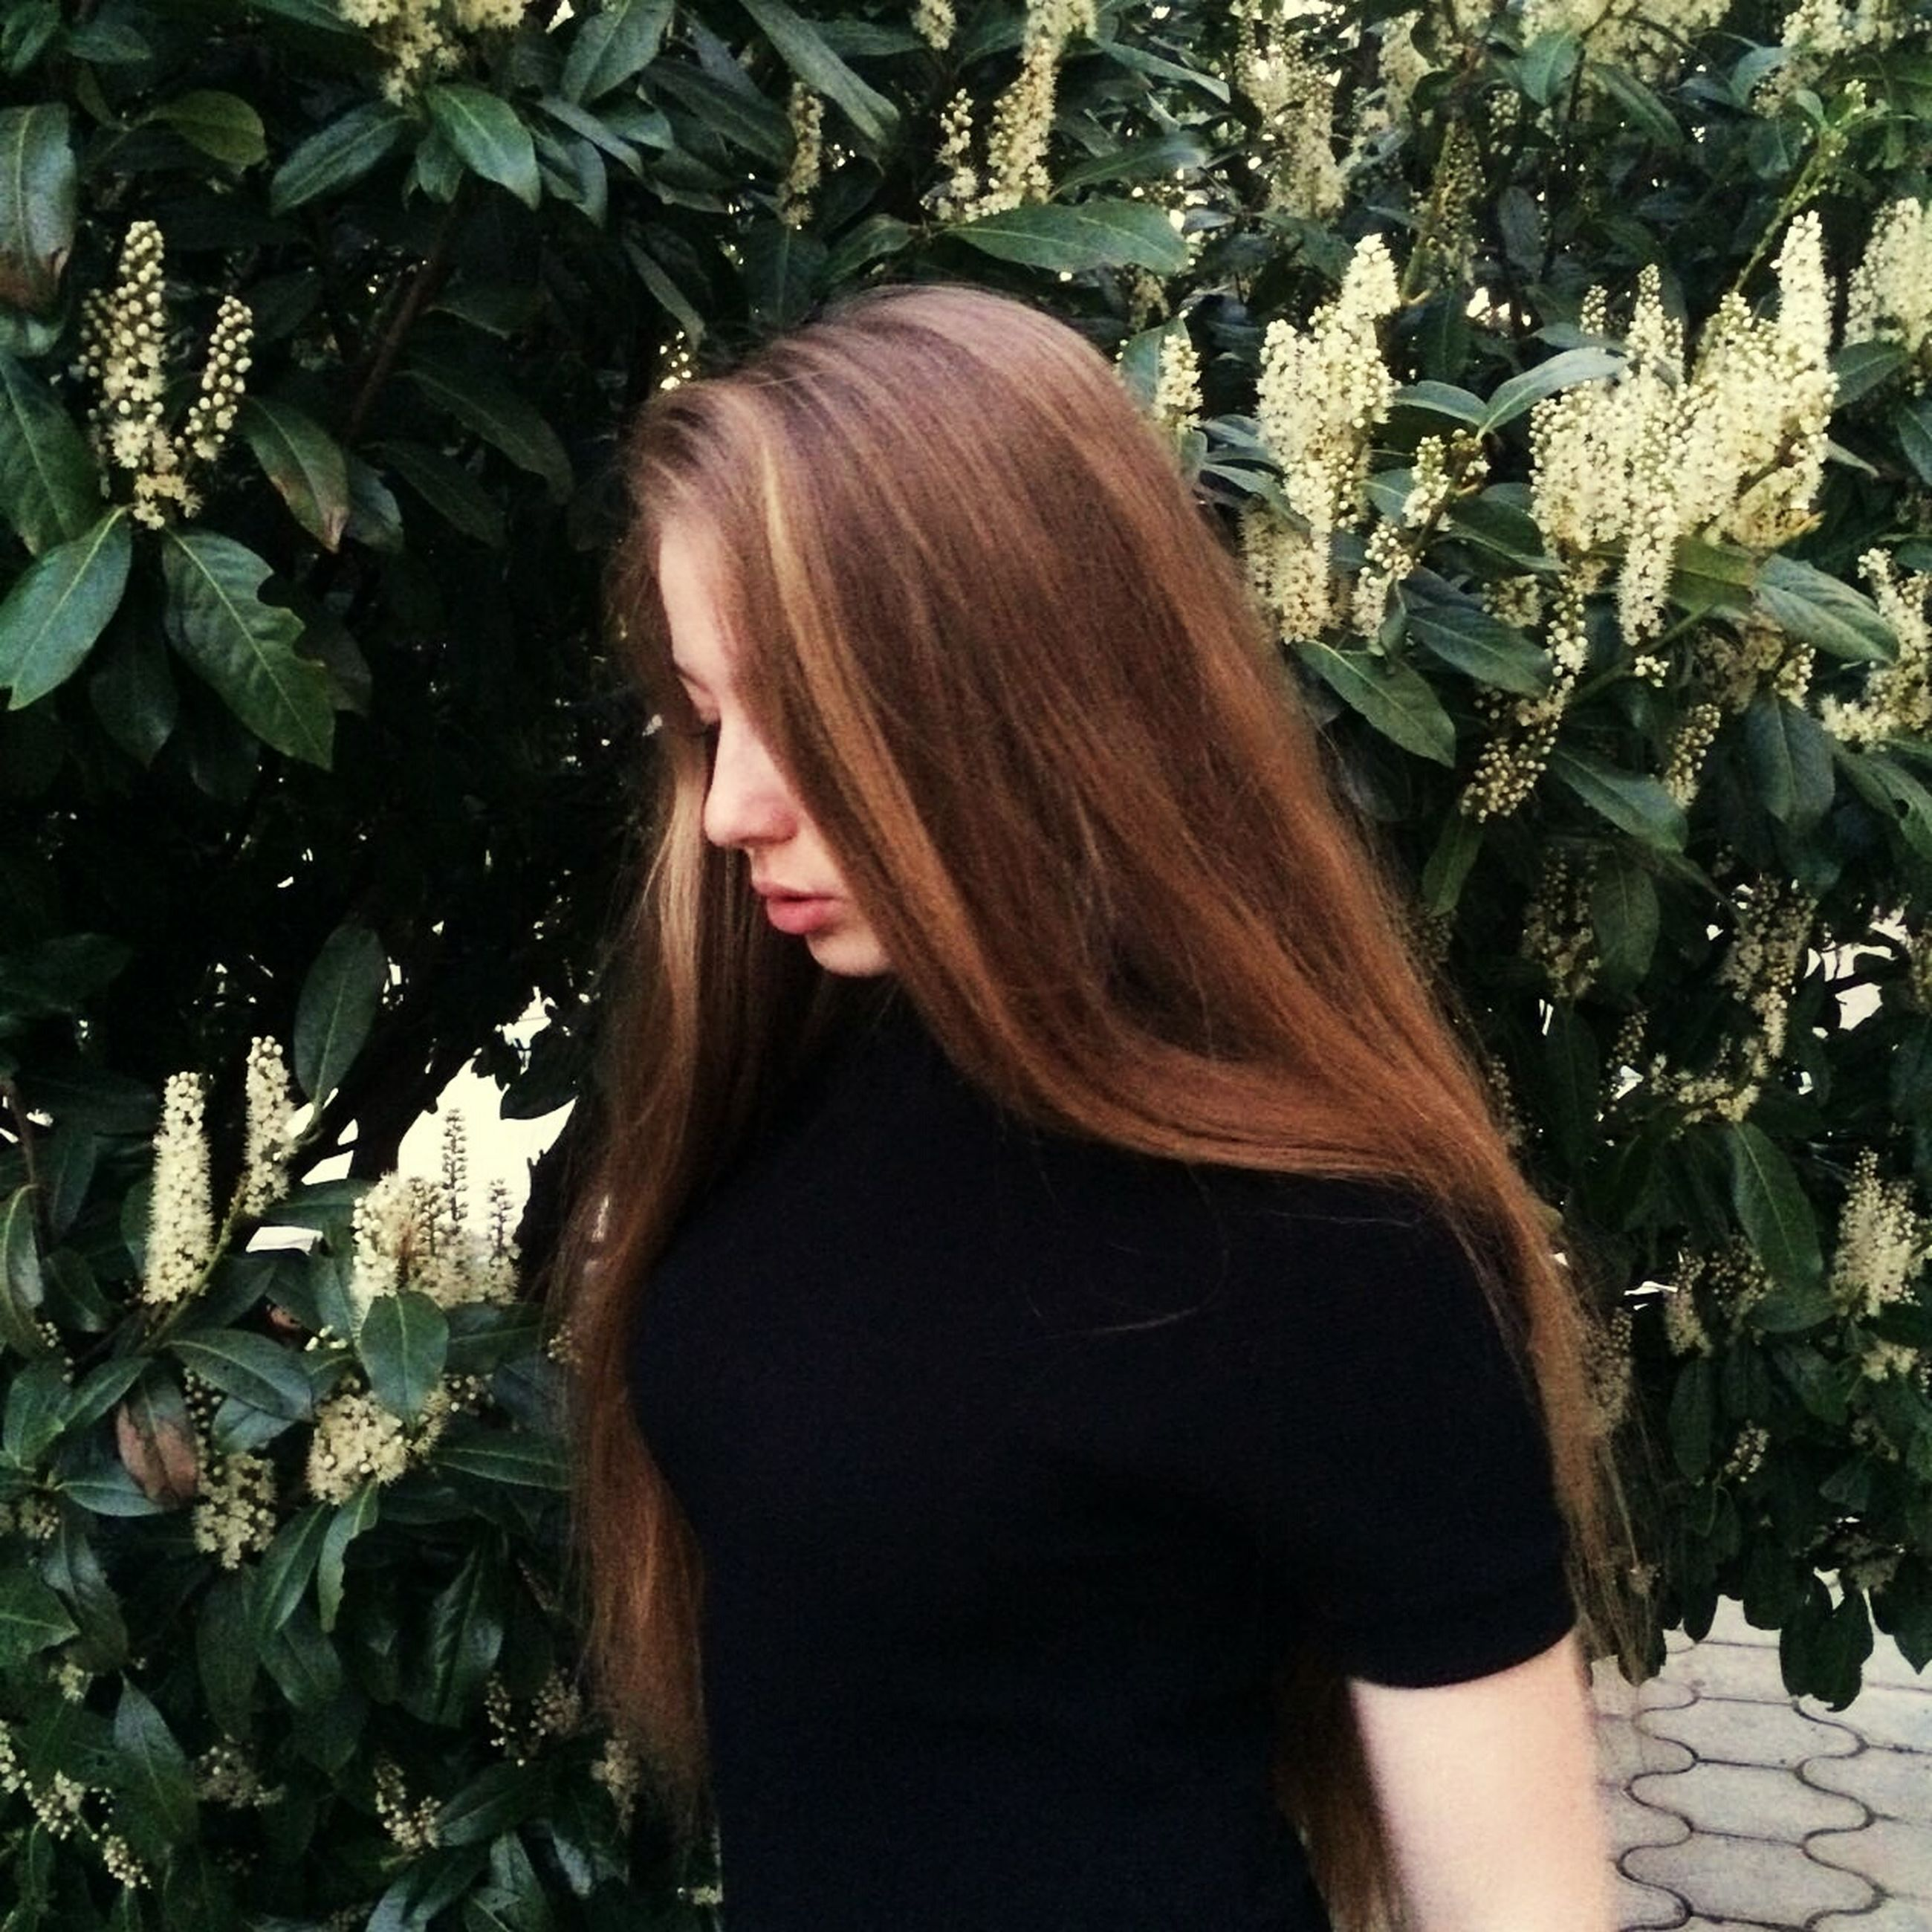 real people, young adult, young women, one person, long hair, standing, lifestyles, outdoors, beautiful woman, day, nature, plant, tree, women, people